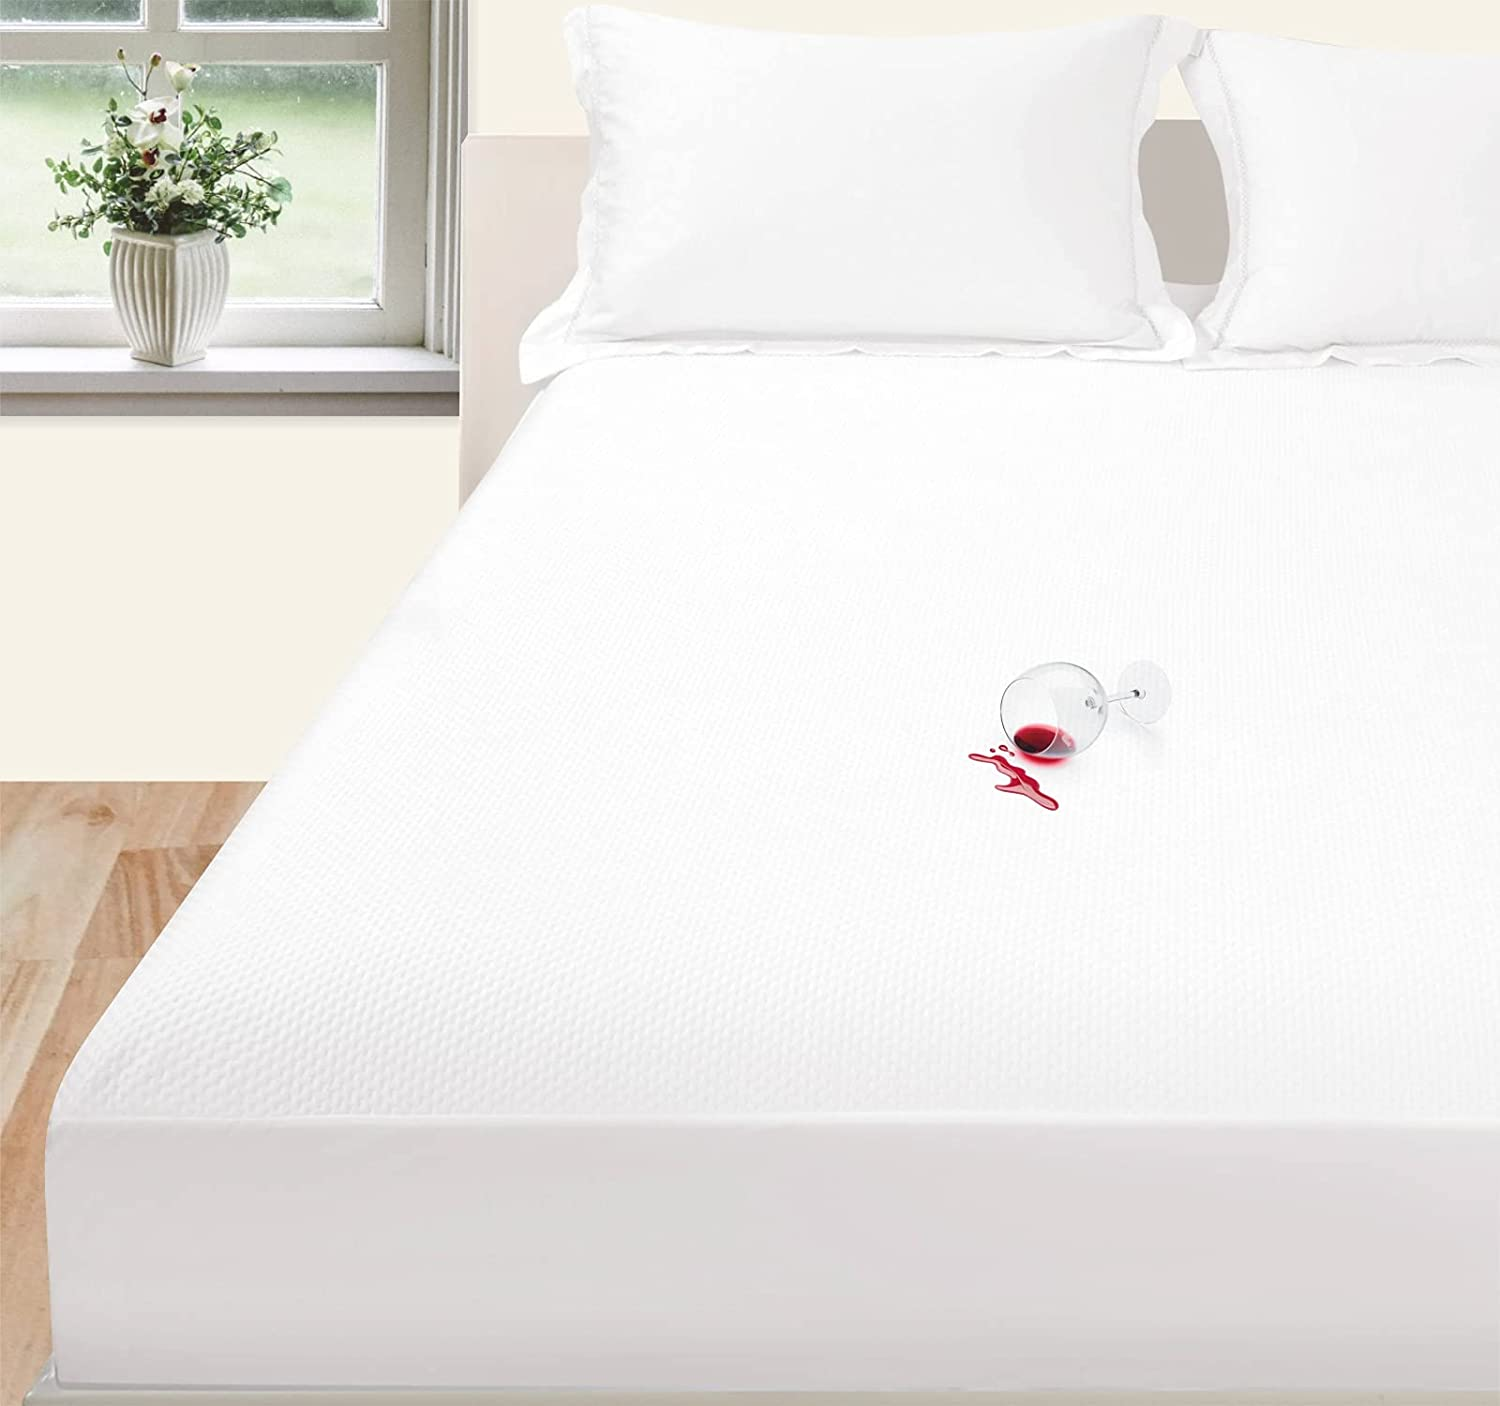 Ultra Premium Waterproof Mattress Protector Top Factory outlet - Bamboo C Soft New life